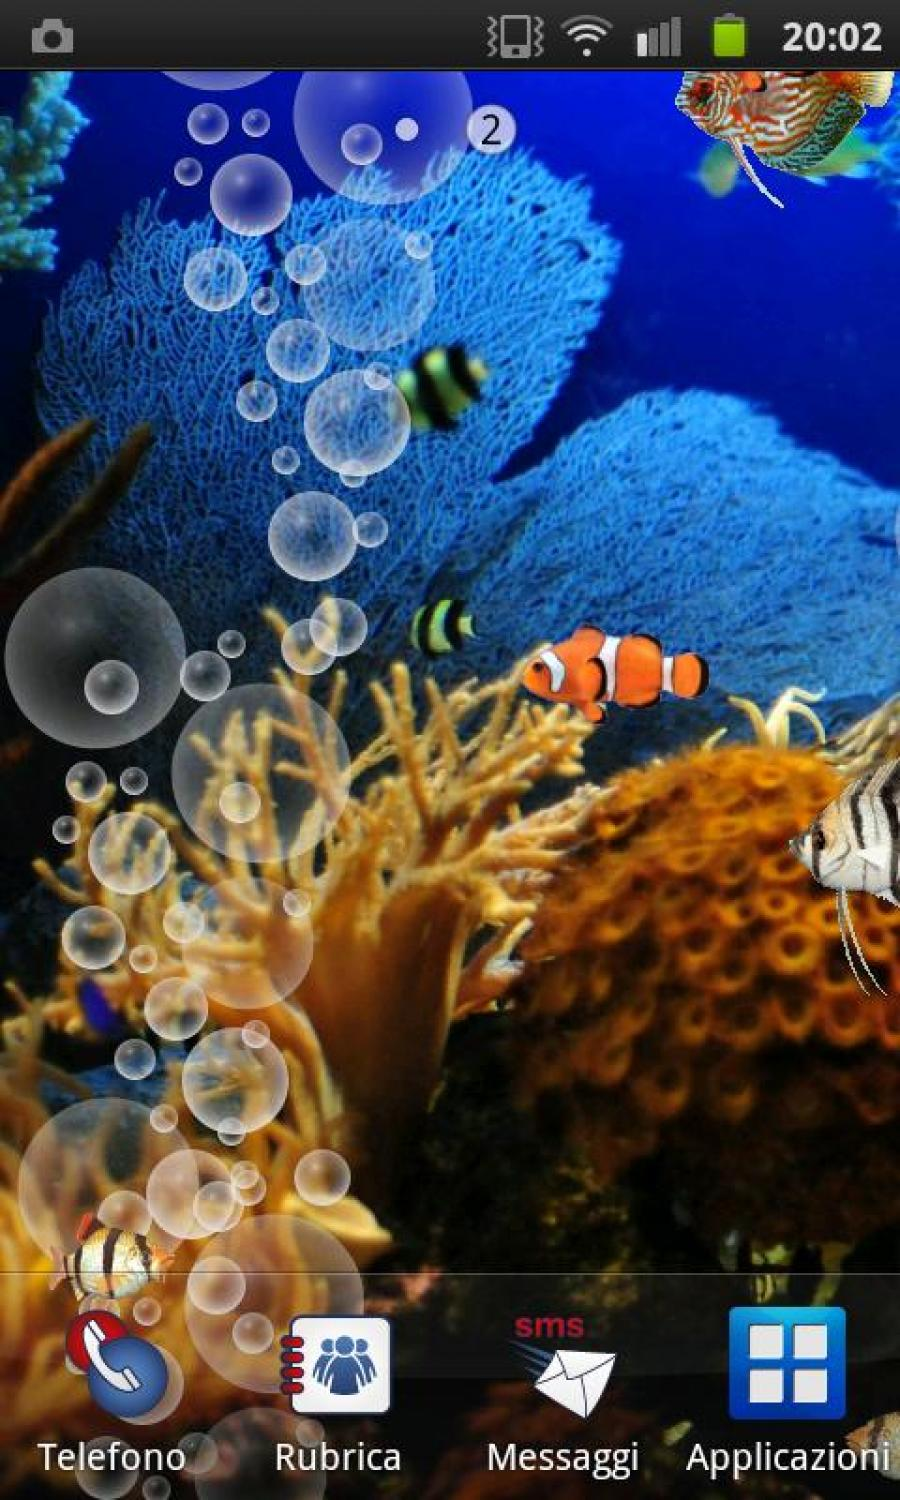 Acquarium live Wallpaper Pro Apk For Android - Approm.org ...